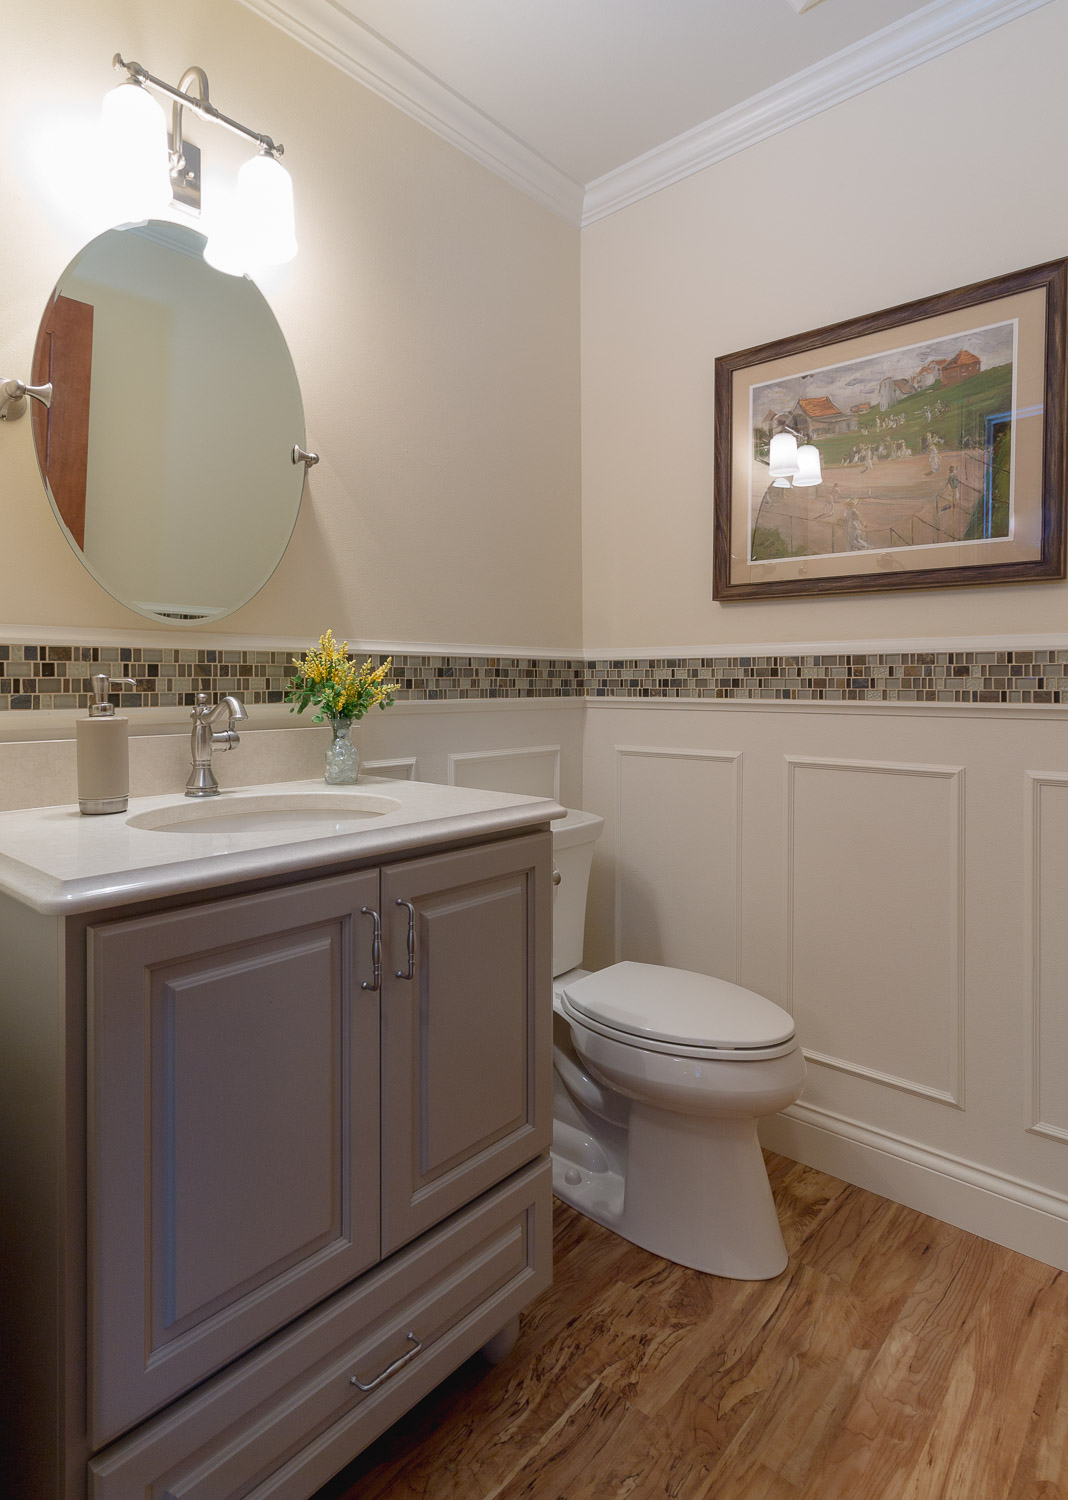 - This powder room integrates a furniture-style vanity cabinet with bun feet, wainscot, and a tile strip.